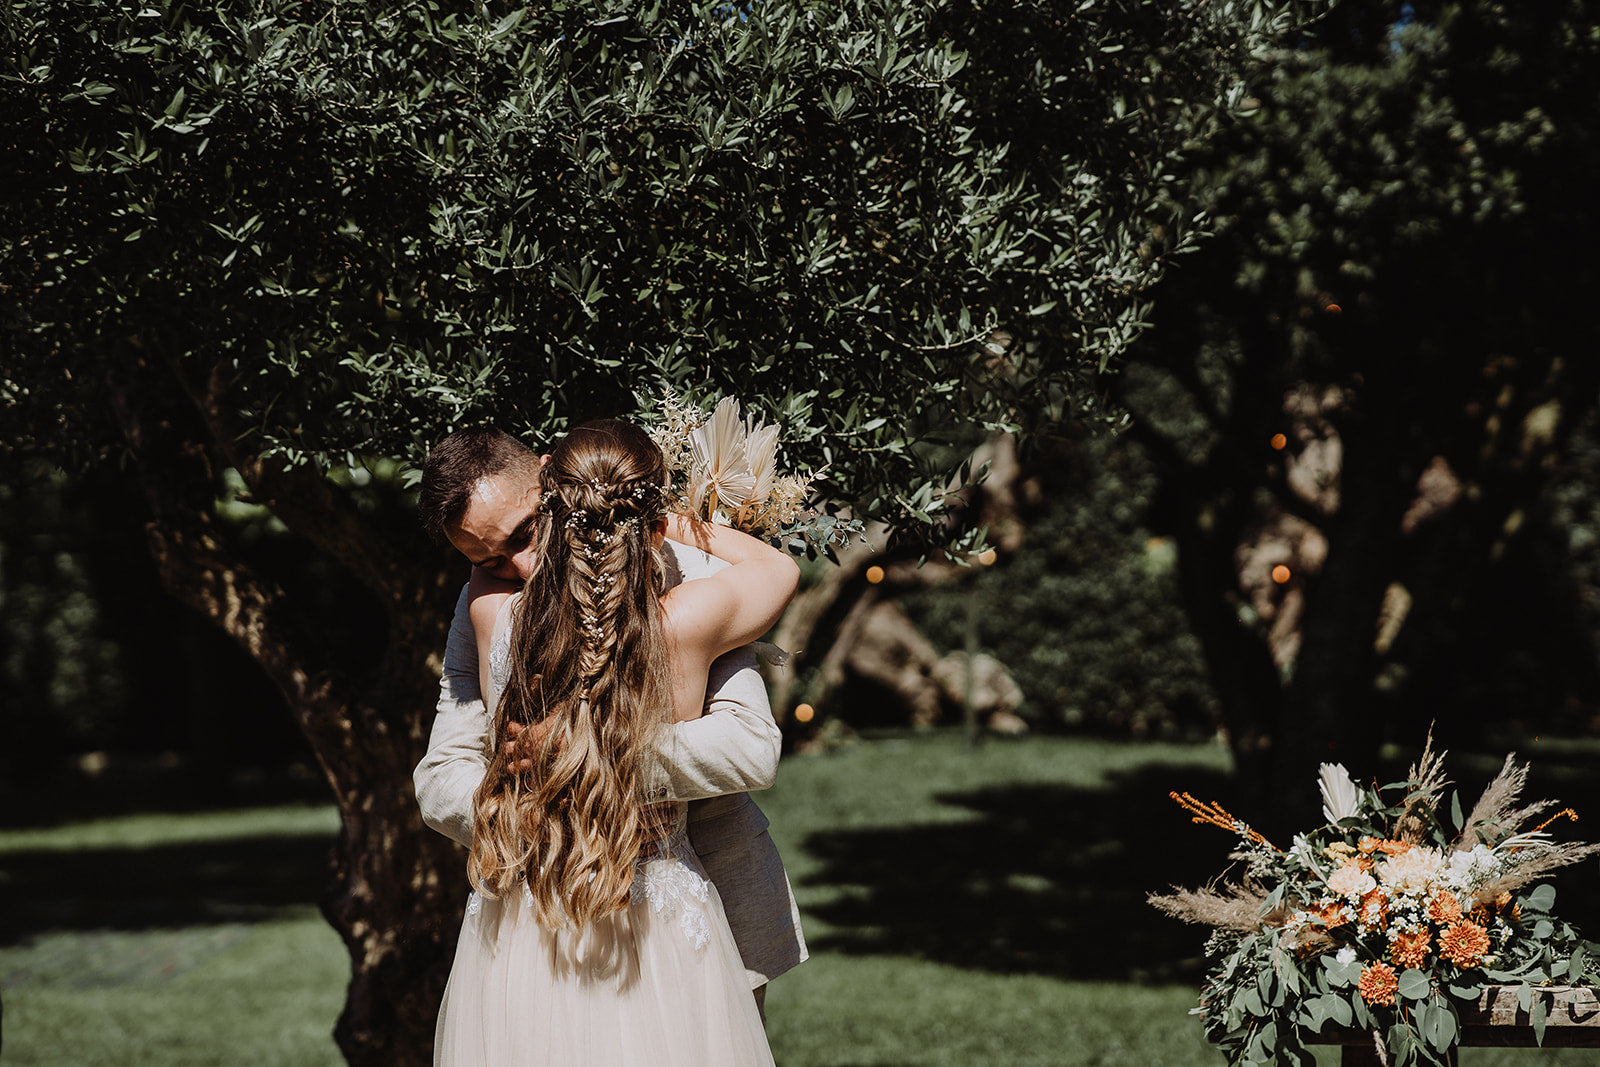 Under the trees the Bride and Groom embrace. The Bride's plaited hair is seen trailing beautifully, whilst she holds her flowers with arms wrapped around her Husband.